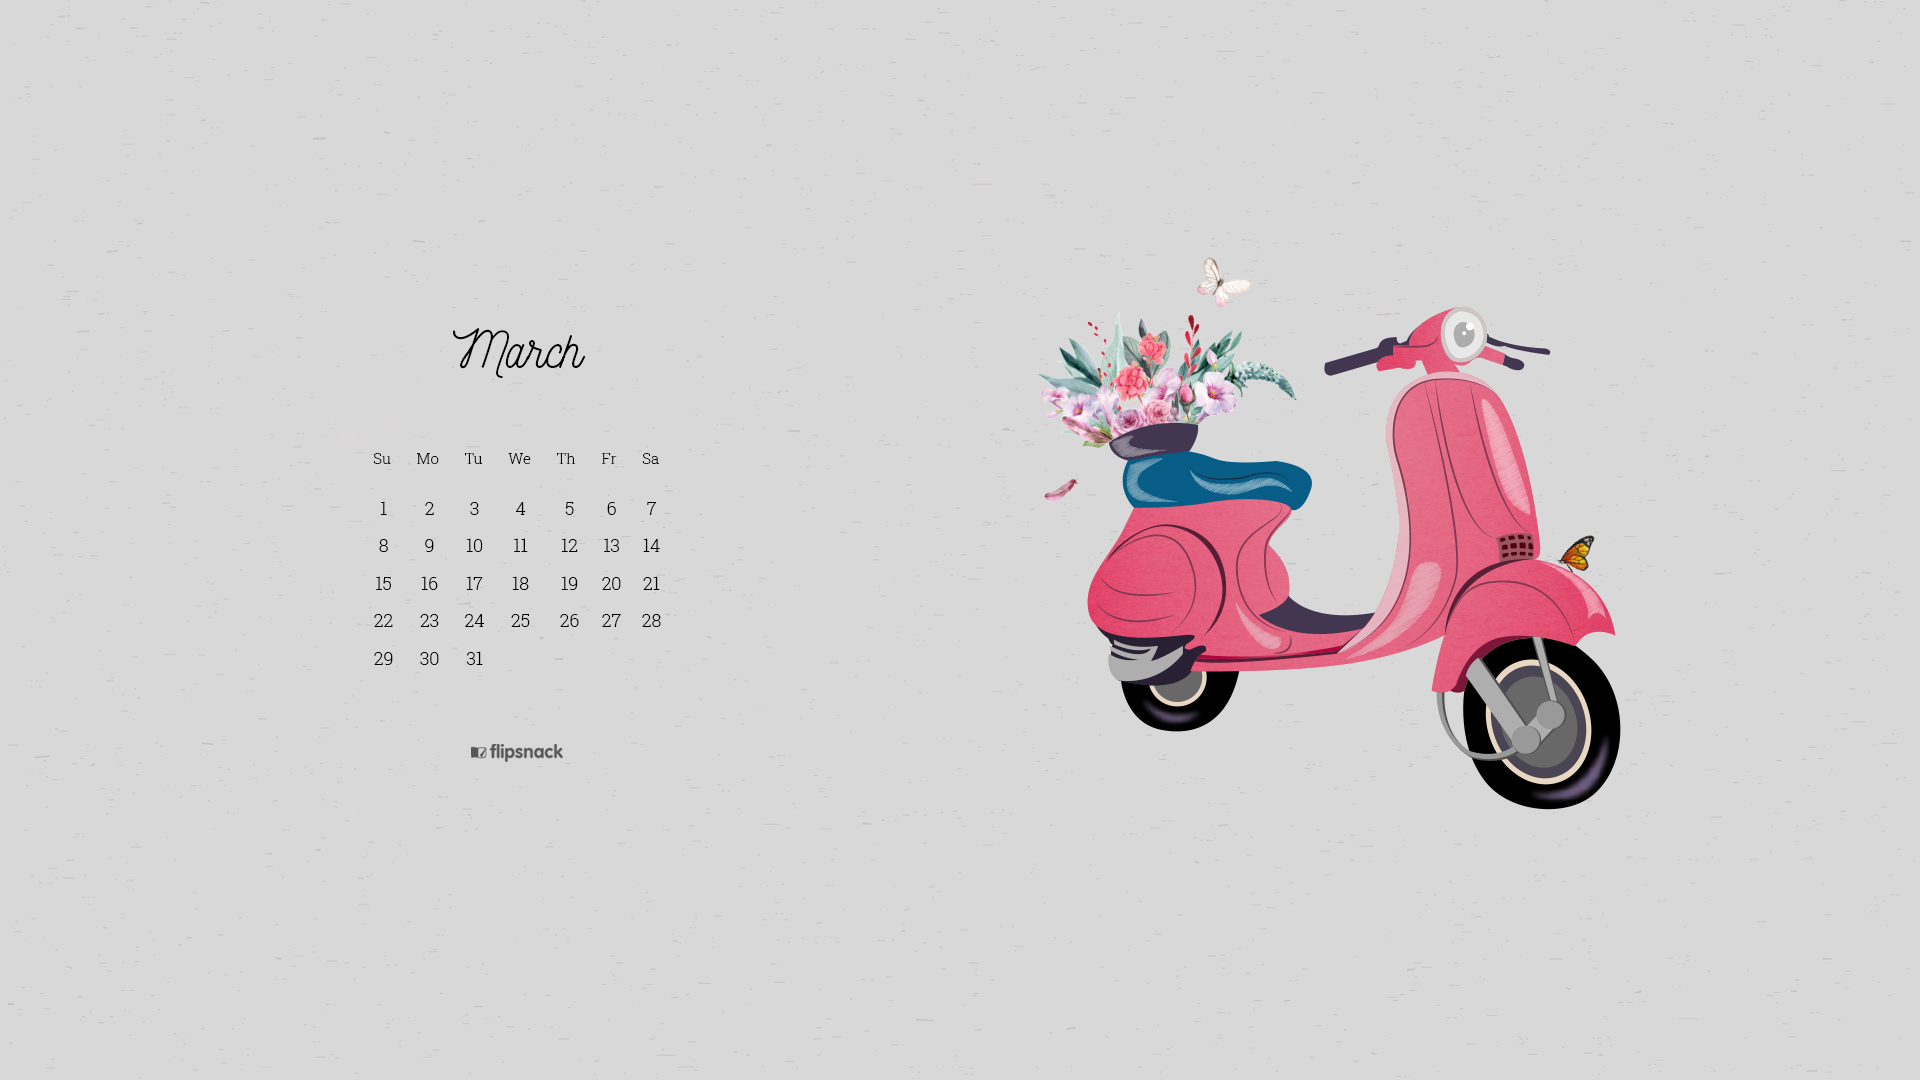 march 2020 wallpaper calendars